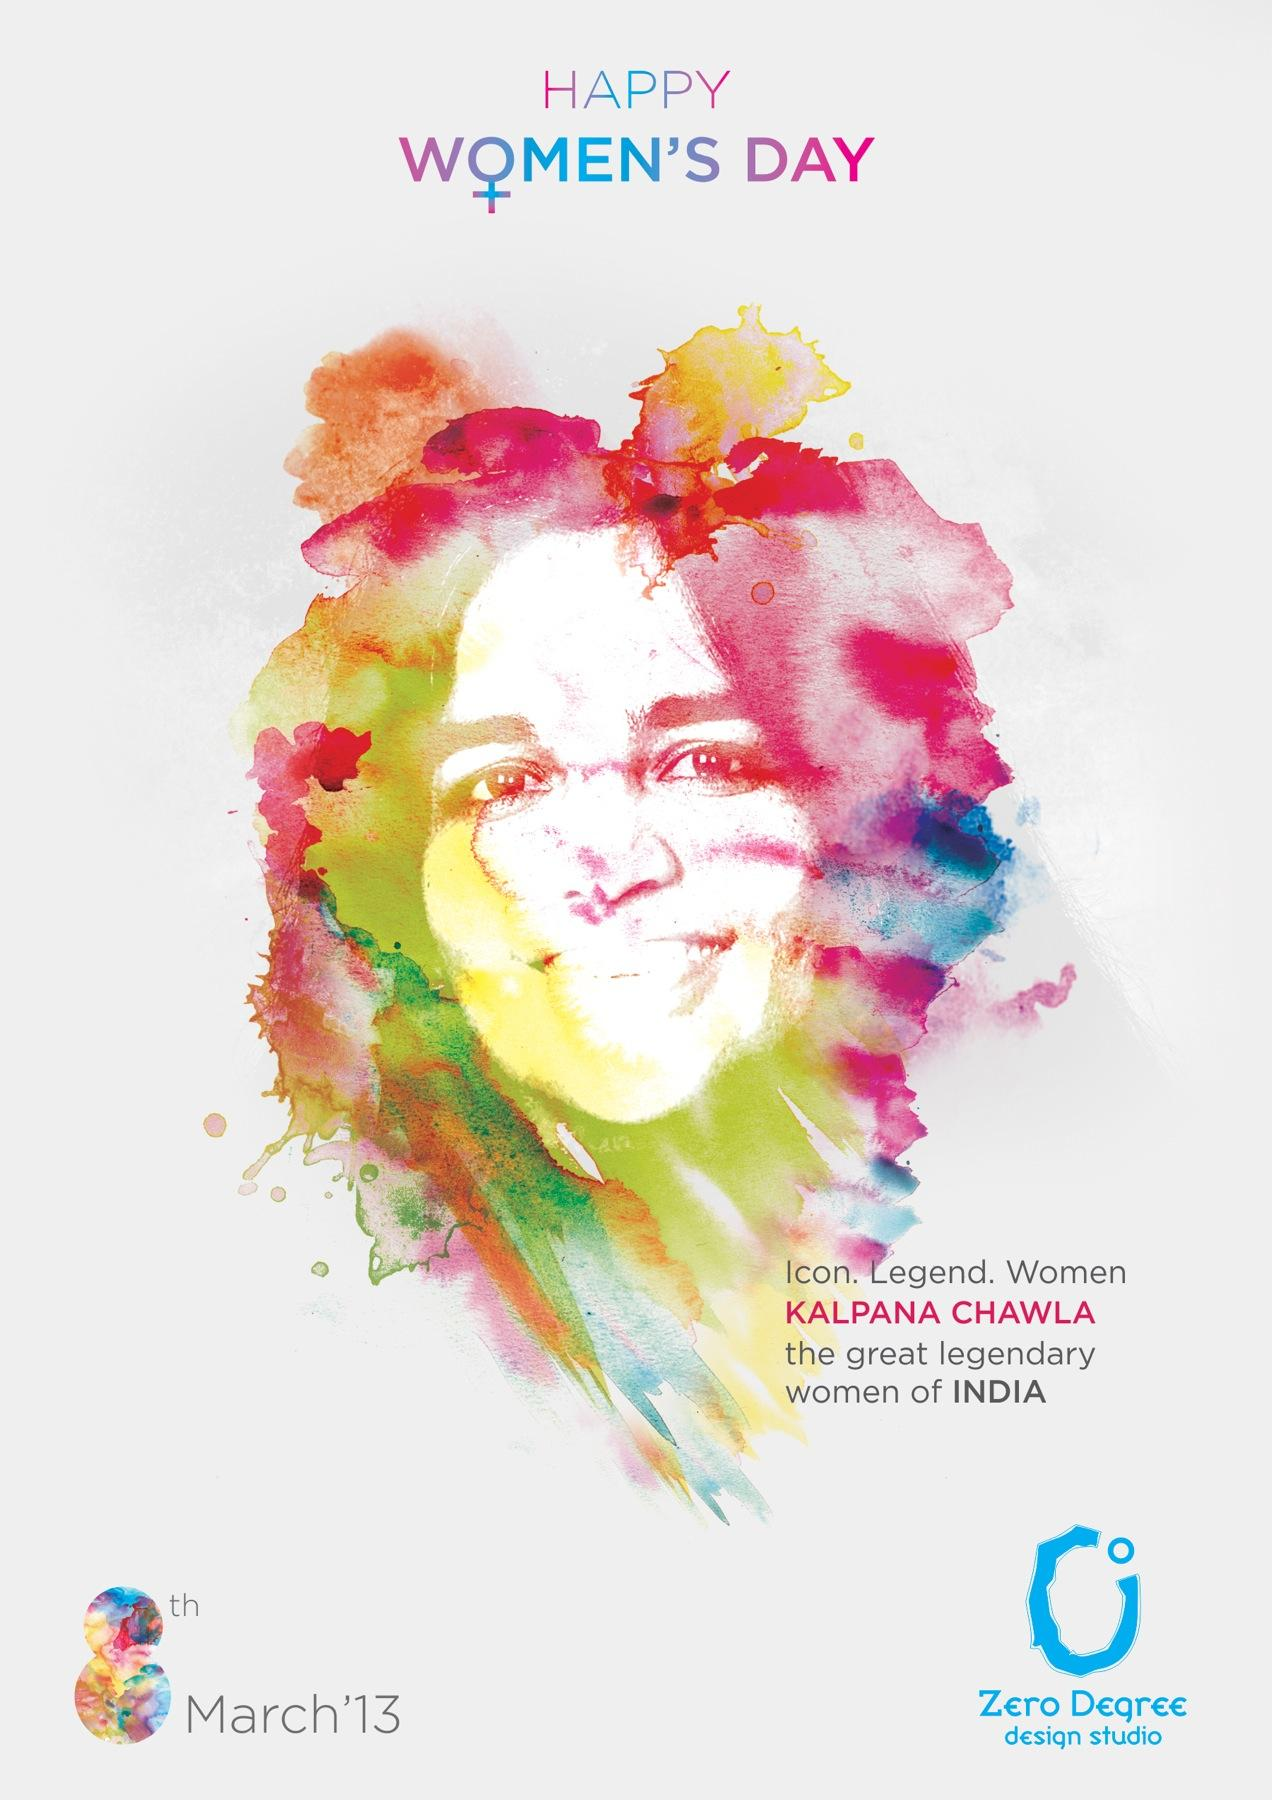 Zero Degree Design Studio Print Ad -  Happy Women's Day, 4